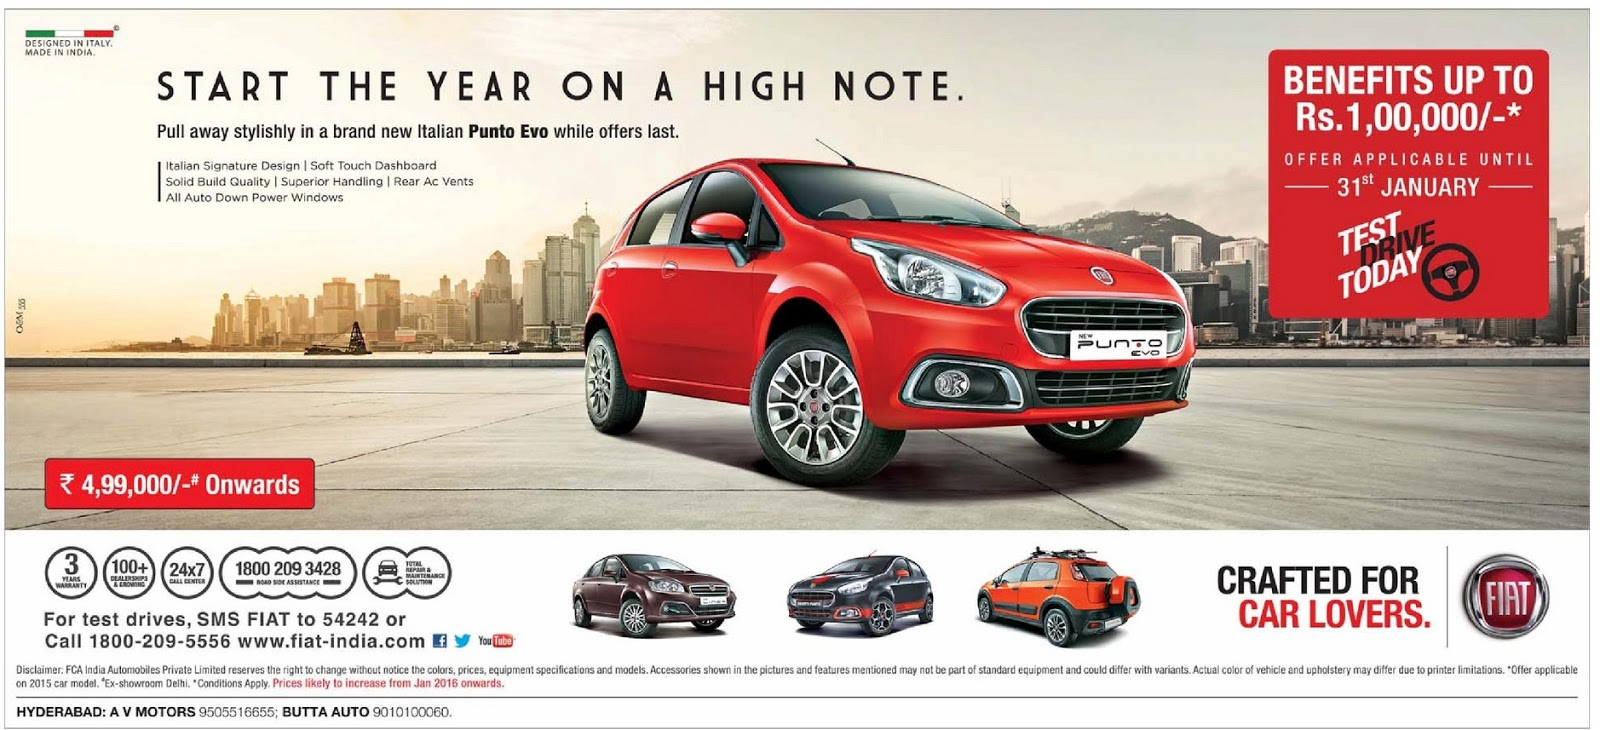 chrysler for people hire limited pune near automobiles its ranjangaon at india sector to plant more news auto fiat